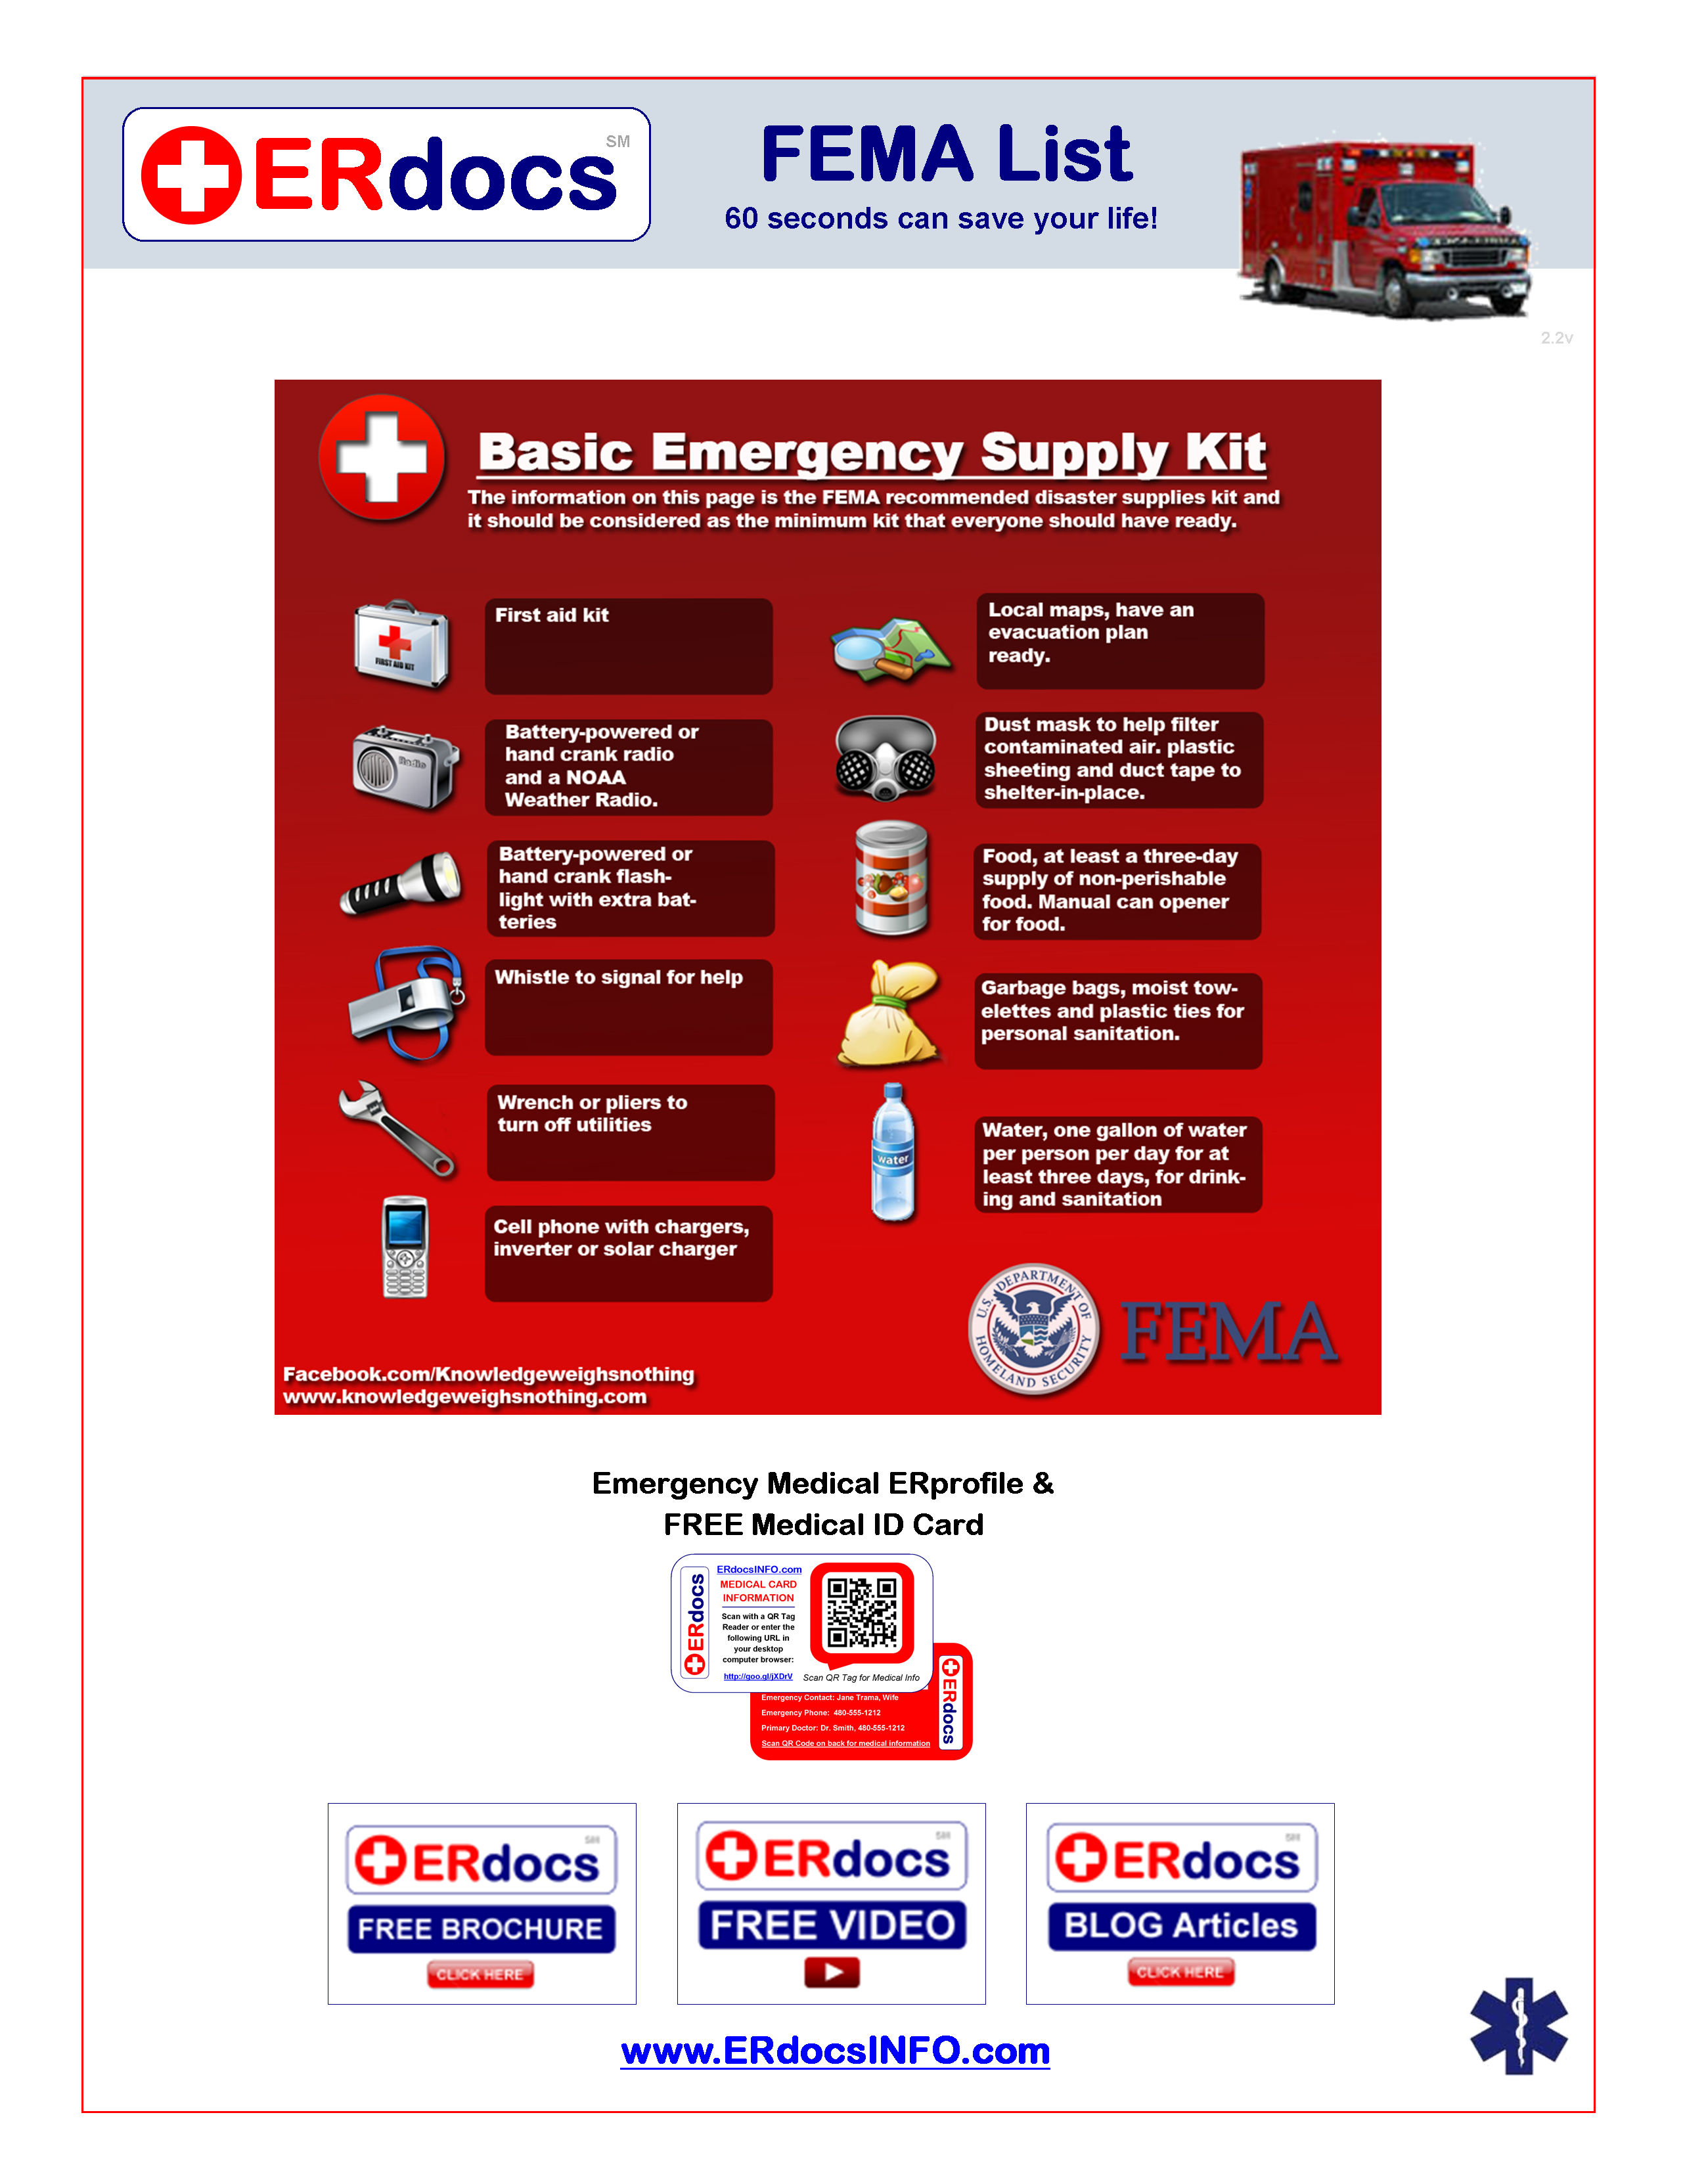 Fema Home Safety Checklist Emergency Medical Erprofile Free Medical Id Card State Of The Art Interactive E Emergency Medical Free Medical Emergency Supplies